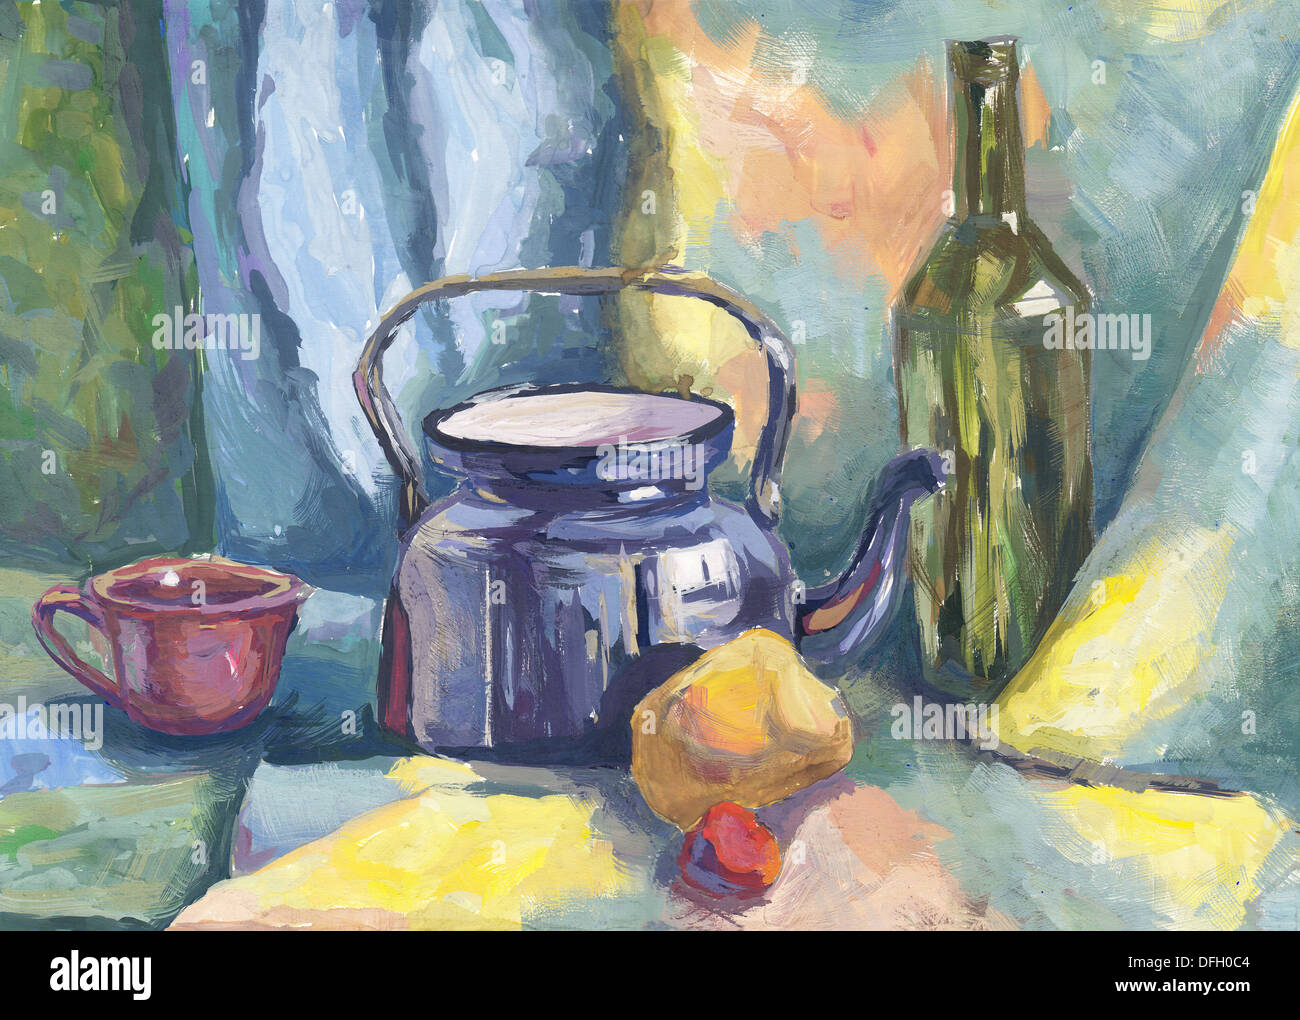 Still life with Metal Teapot and Bottle. Painting. Gouache on Paper - Stock Image